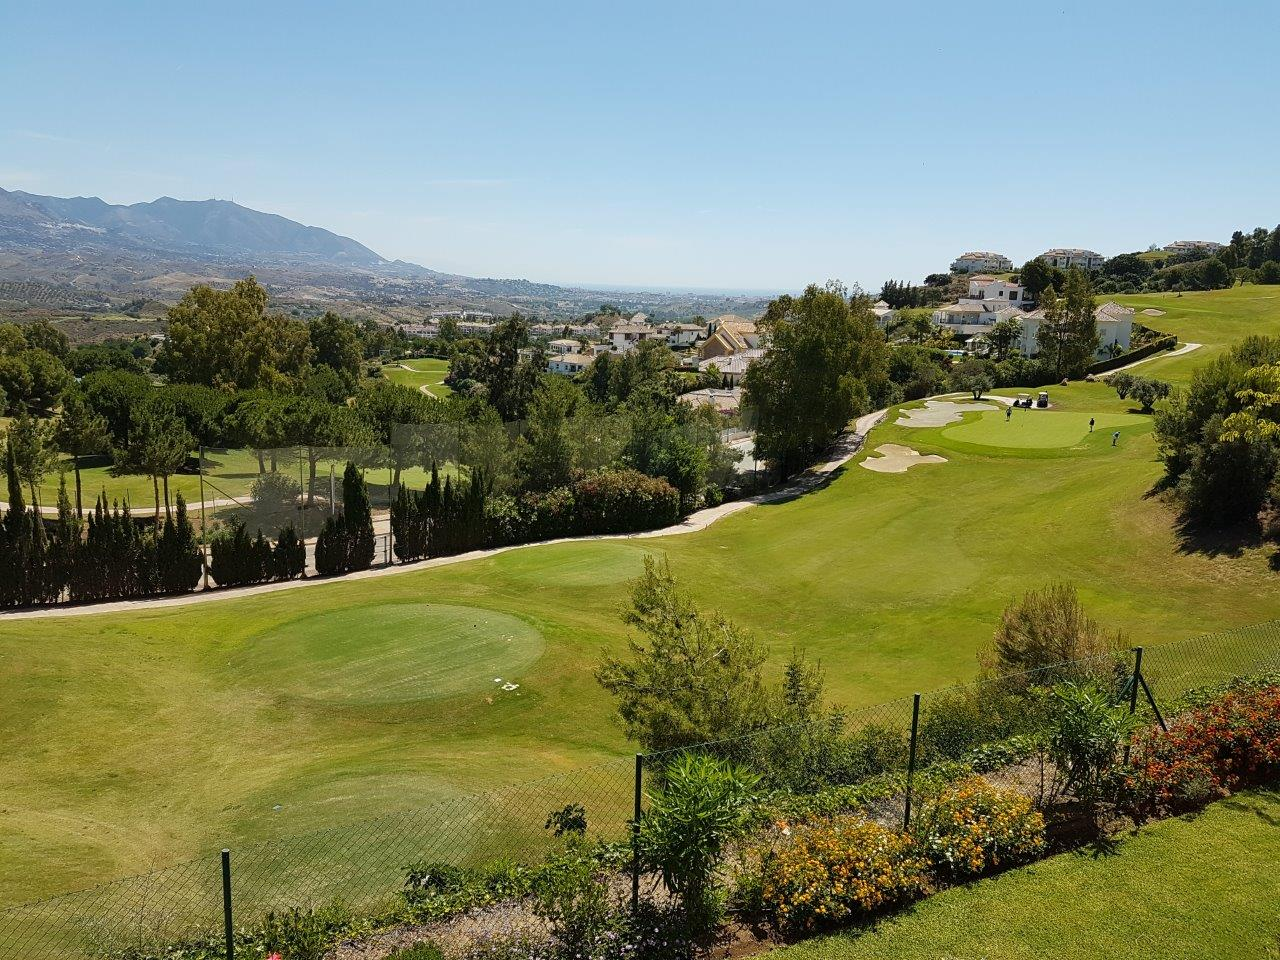 lelighet till salgs i miralfores golf, apartment for sale in , miralores golf